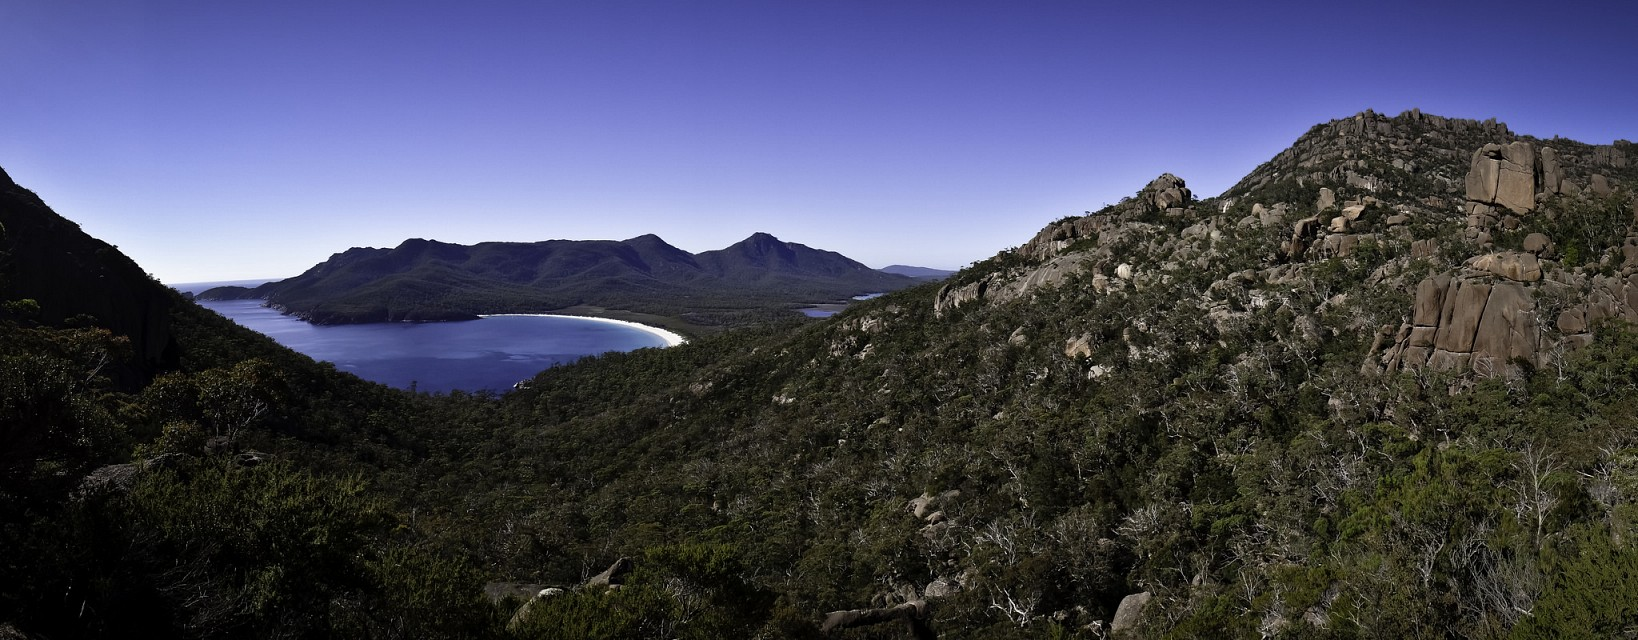 Wineglass Bay lookout panorama, Freycinet National Park - Freycinet National Park